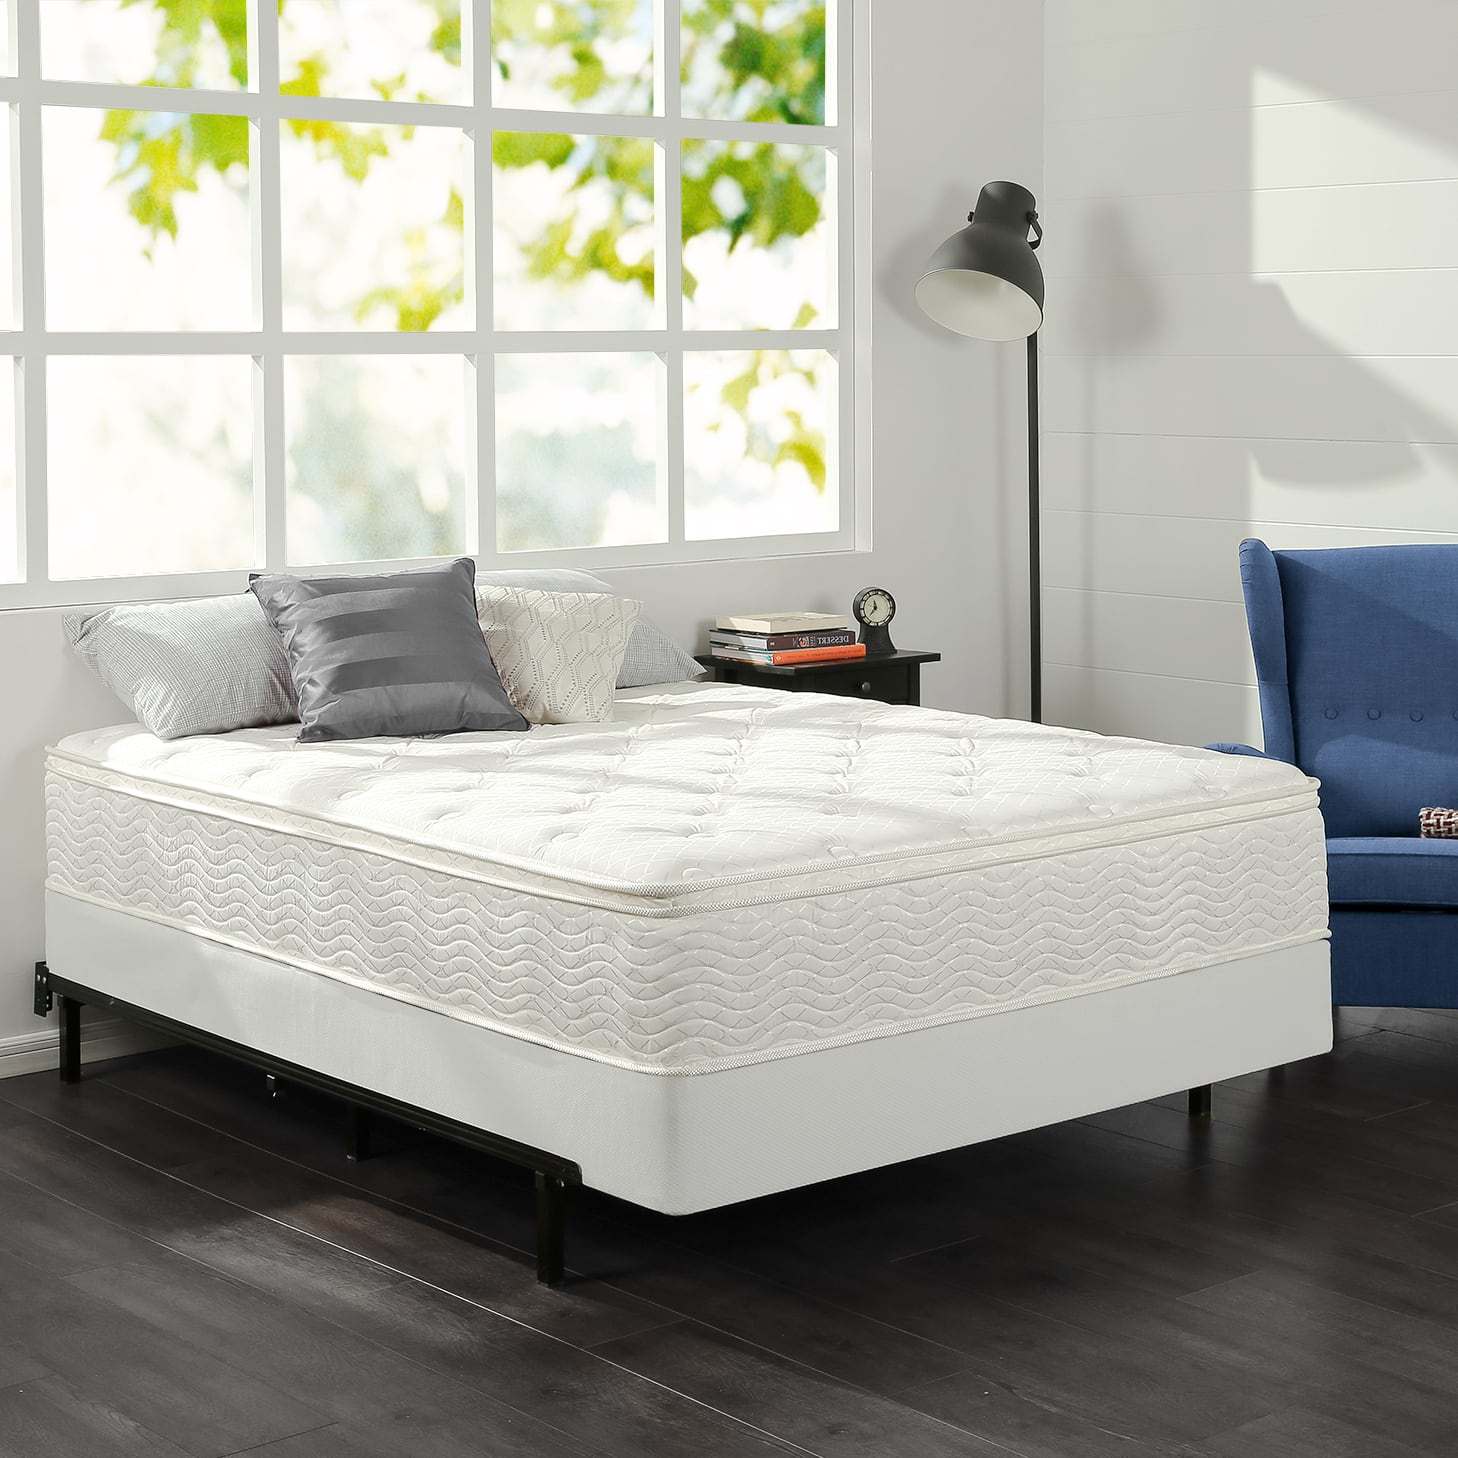 Zinus 12 Comfort Firm Spring Mattress From 116 10 Twin Plus Free